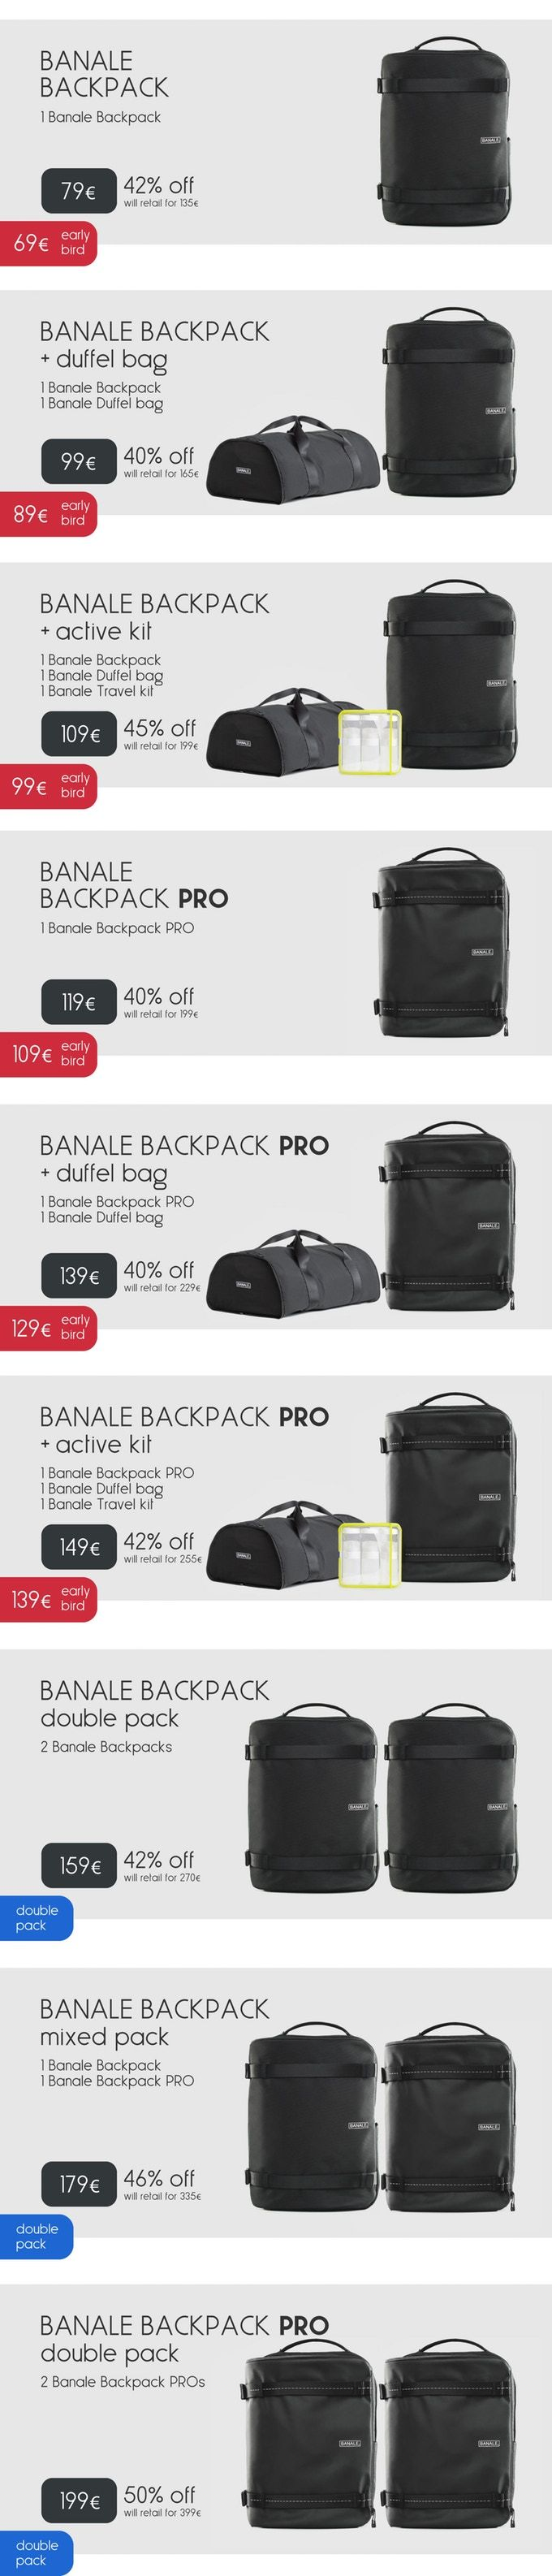 21839b40101 Banale Backpack: a new category of urban backpack by Banale ...